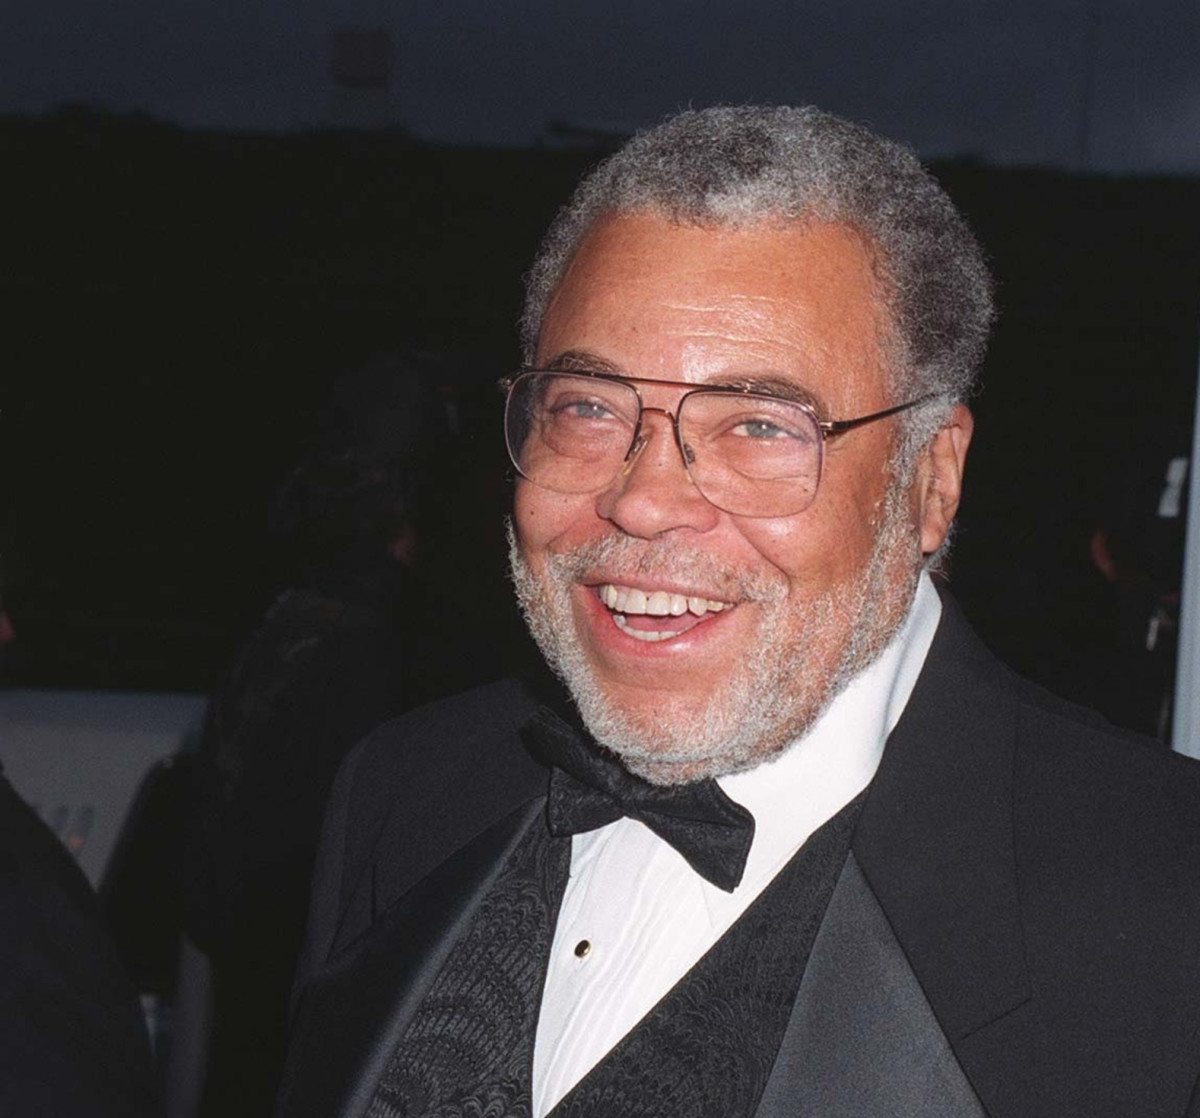 james earl jones biography James earl jones early life james earl jones was born on january 17, 1931 in arkabutla, mississippi, united states his father, robert earl jones was an actor and fighter but he died in 2006, and his mother ruth connolly worked as a teacher.